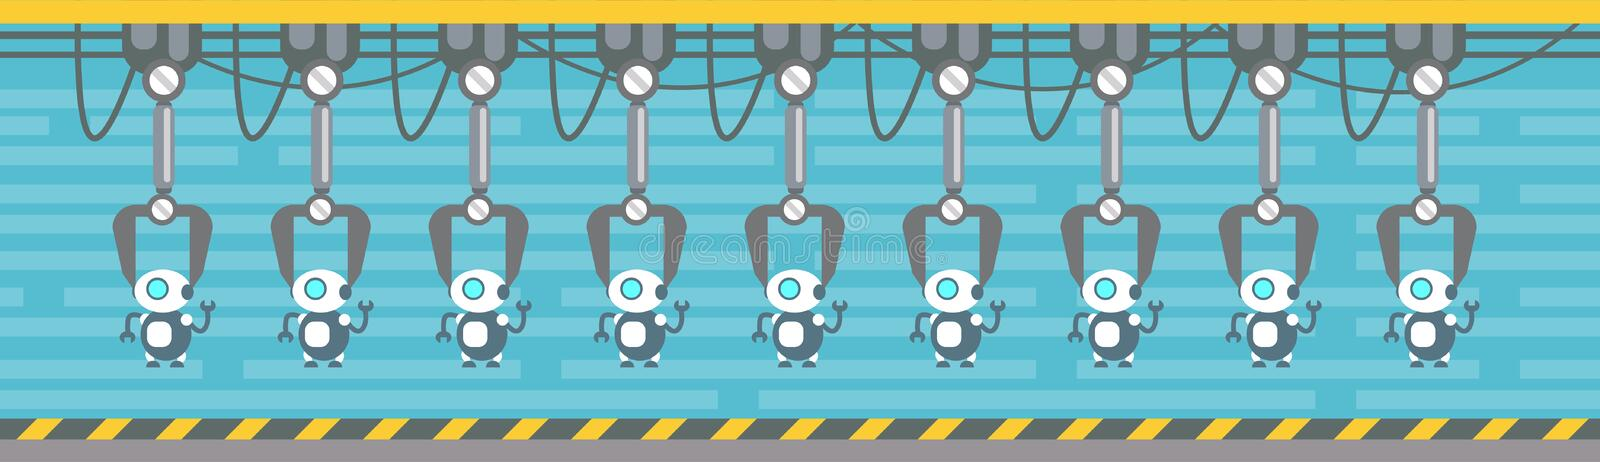 Robots Production Conveyor Automatic Assembly Machinery Industrial Automation Industry. Flat Vector Illustration royalty free illustration